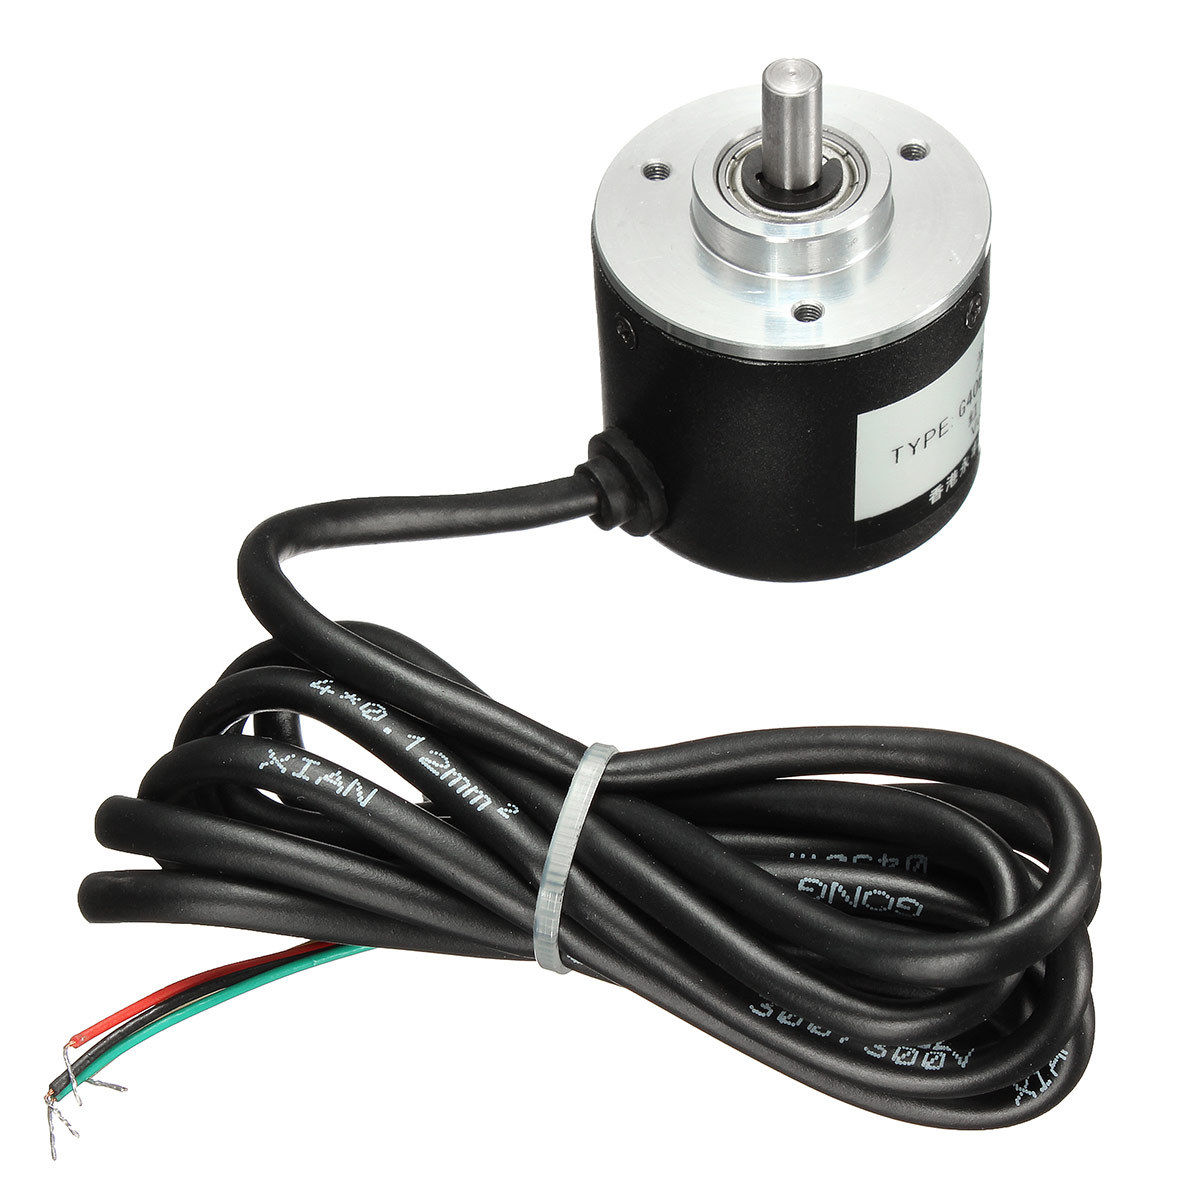 Rotary Encoder 400P//R 6mm Incremental Optical Shaft Working Measurement 5-24V S2